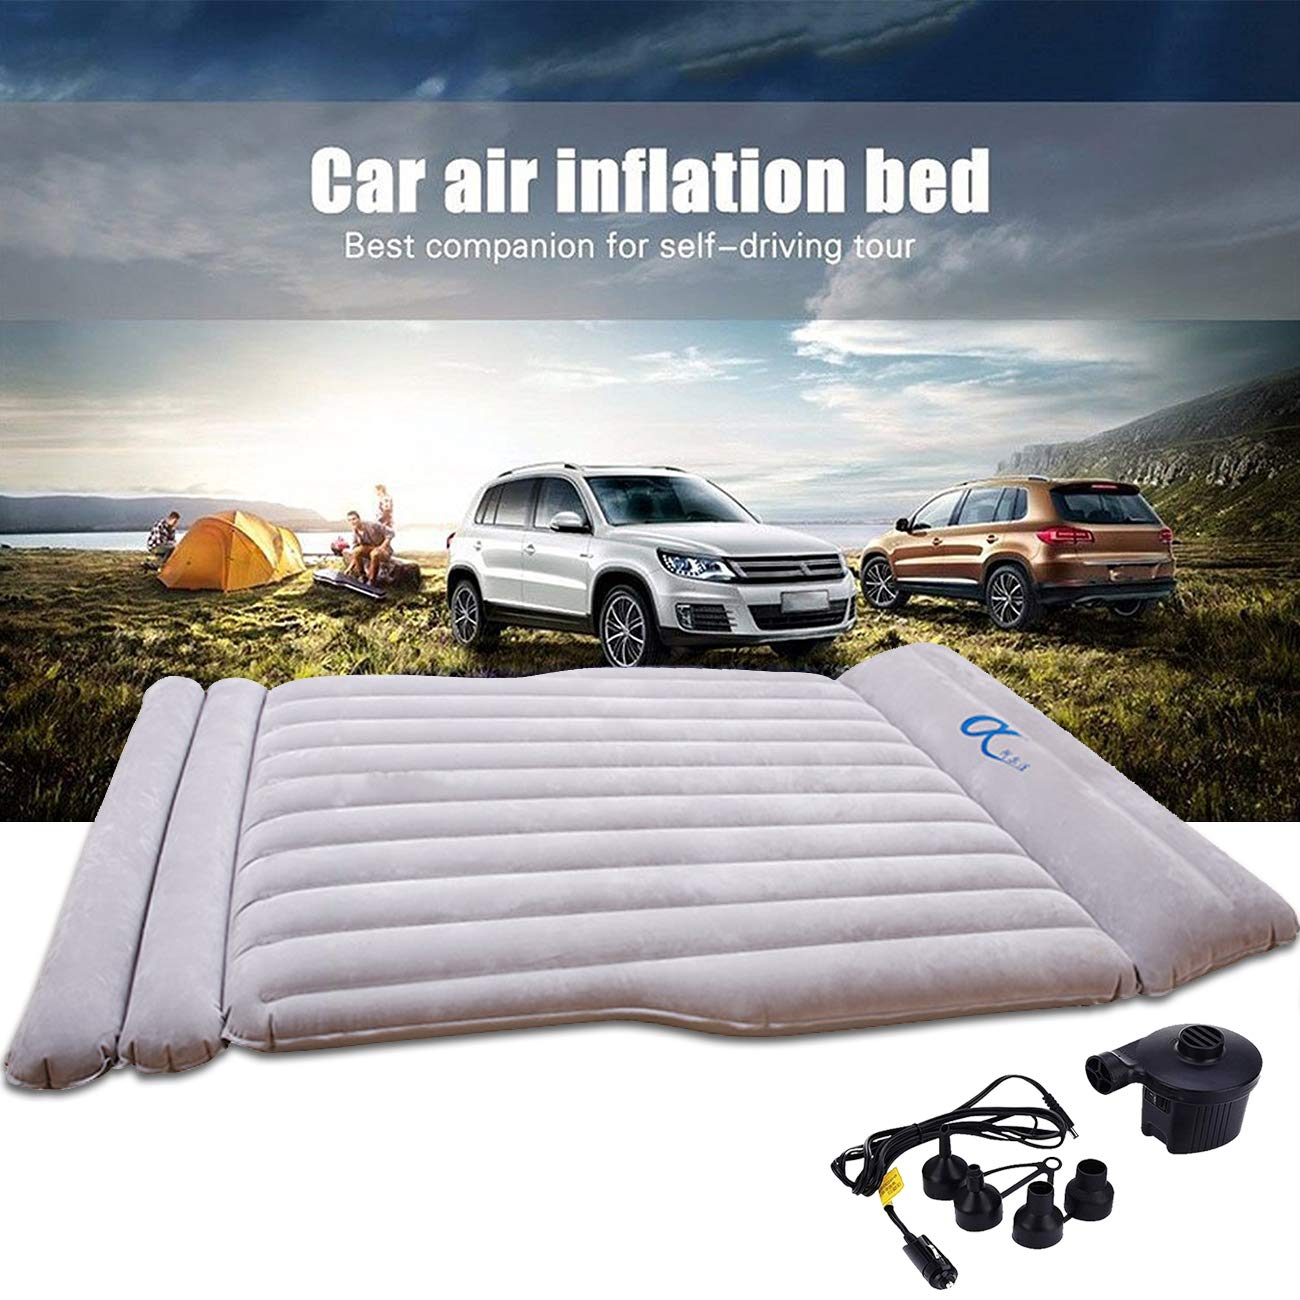 Universal SUV Air Mattress Thickened Car Bed Inflatable Home Air Mattress Portable Camping Outdoor Mattress Flocking Surface Fast Inflation